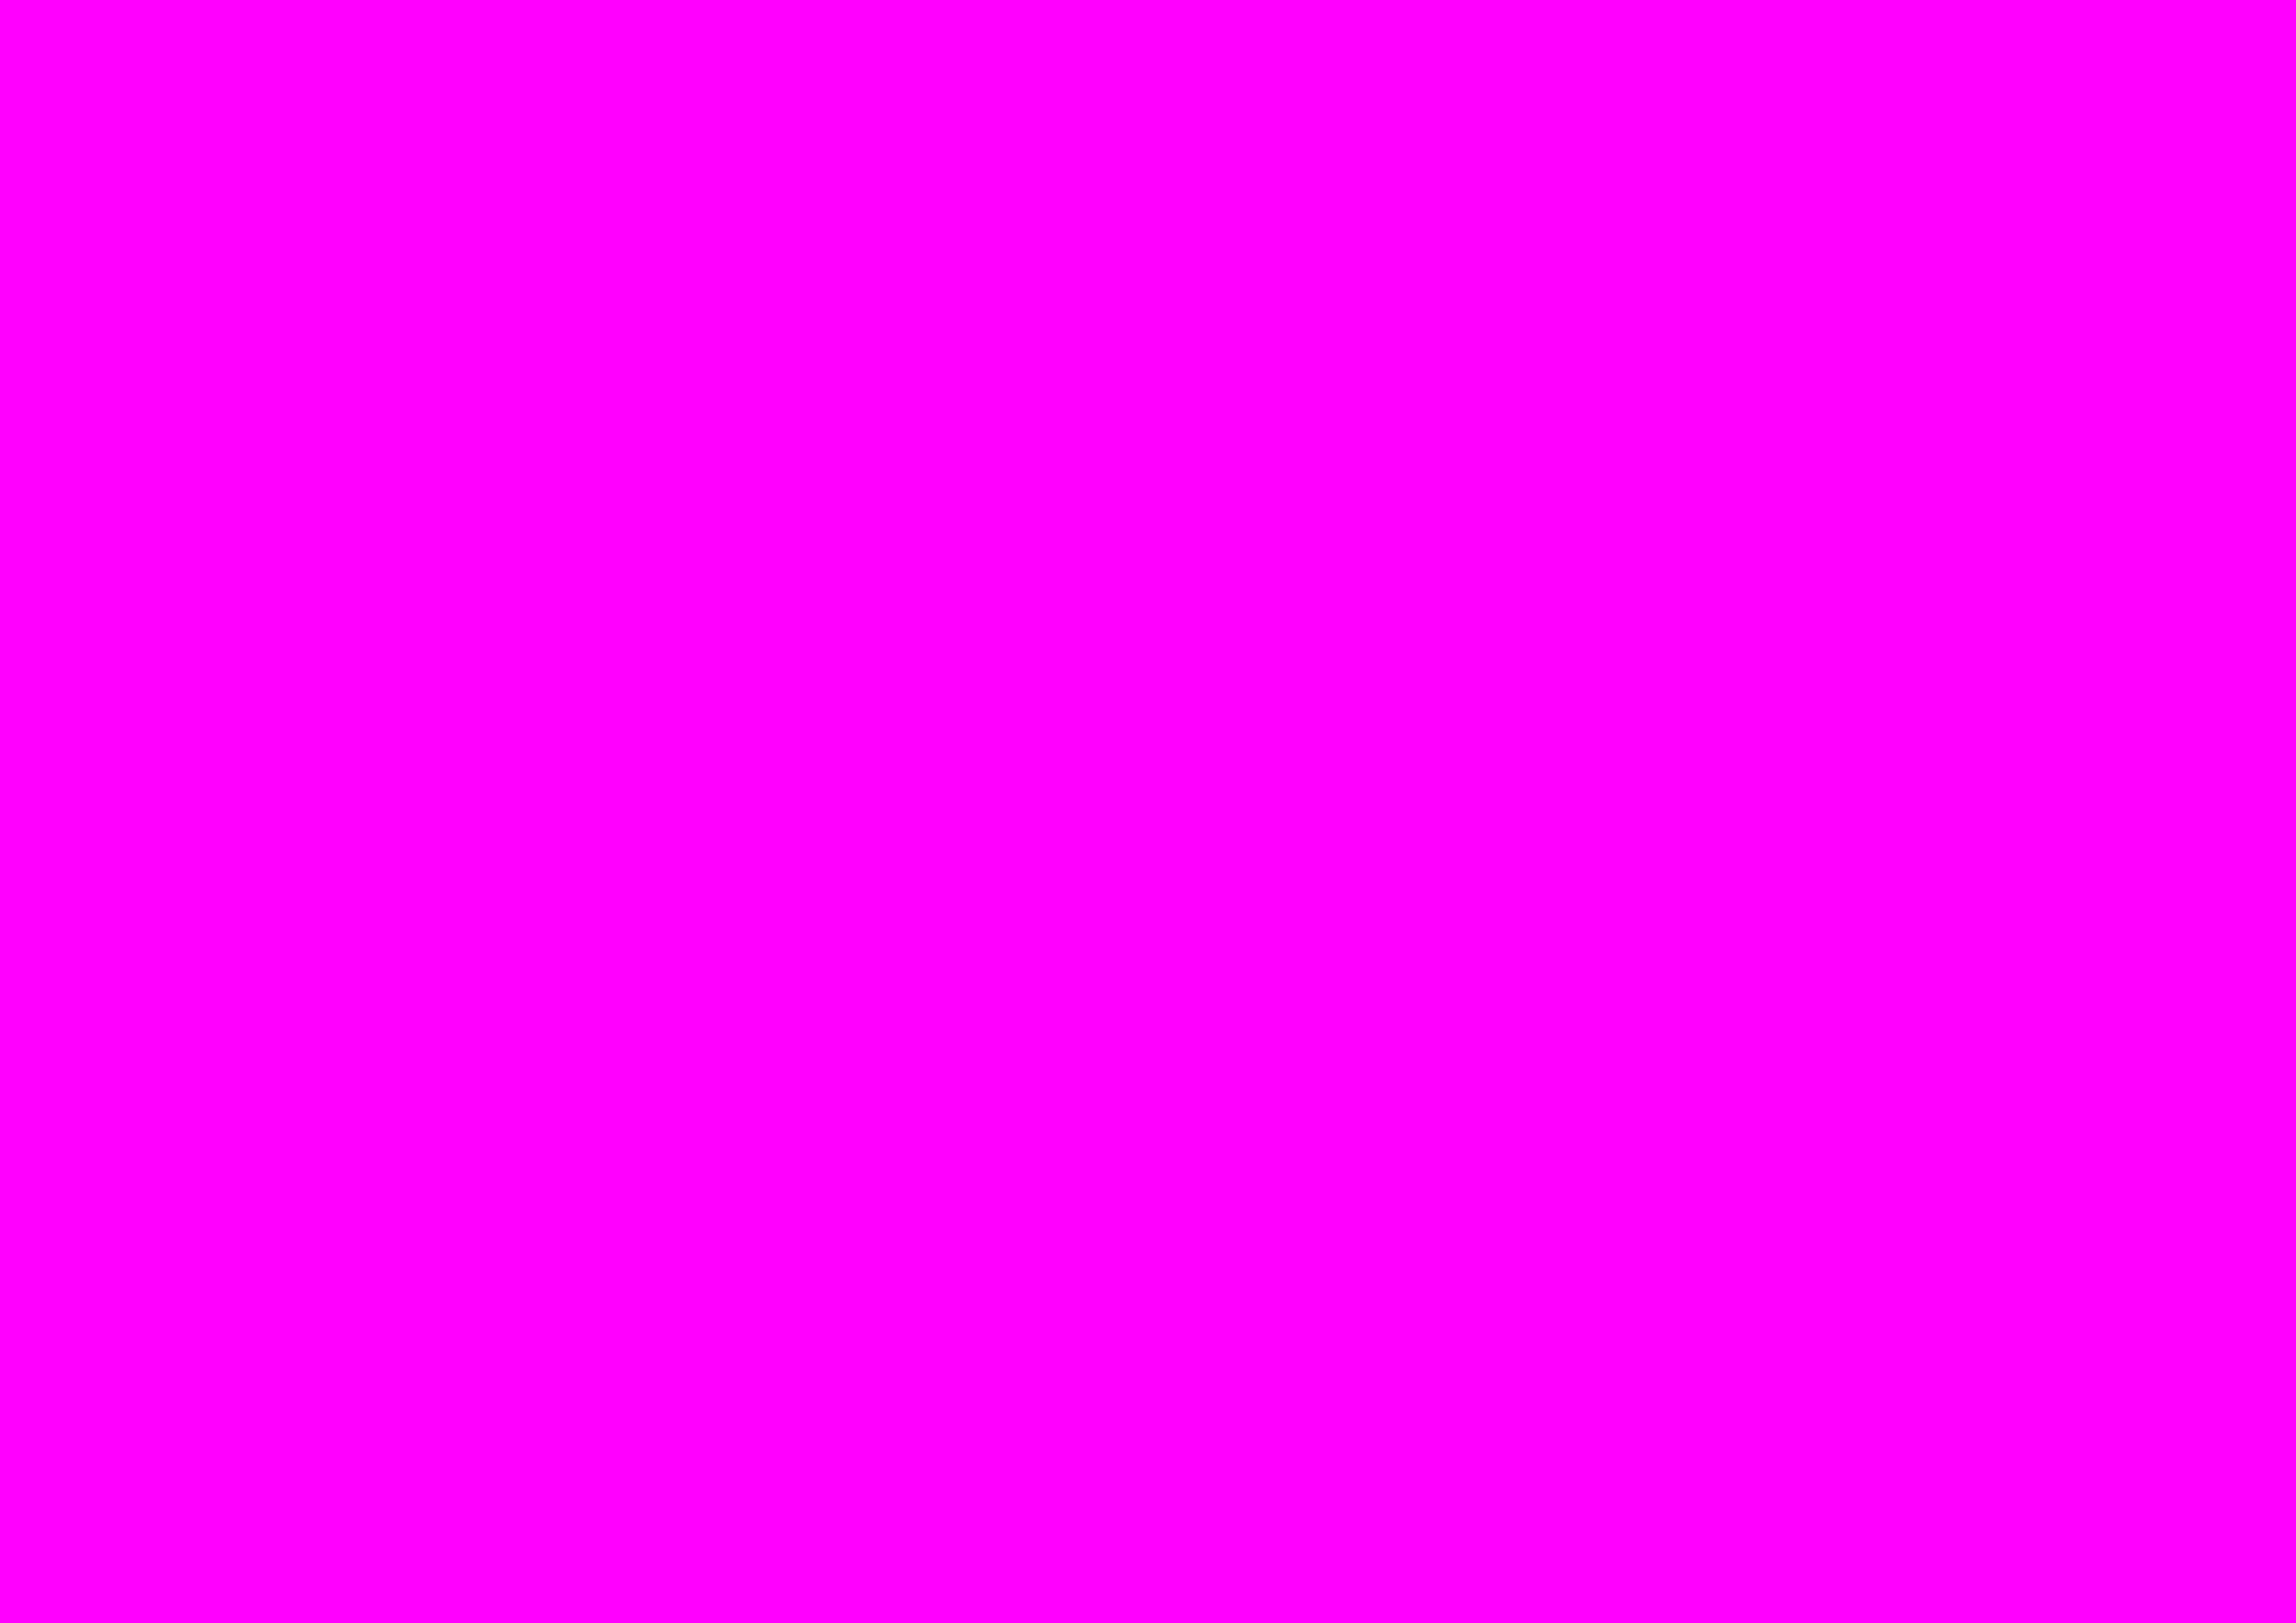 3508x2480 Fuchsia Solid Color Background